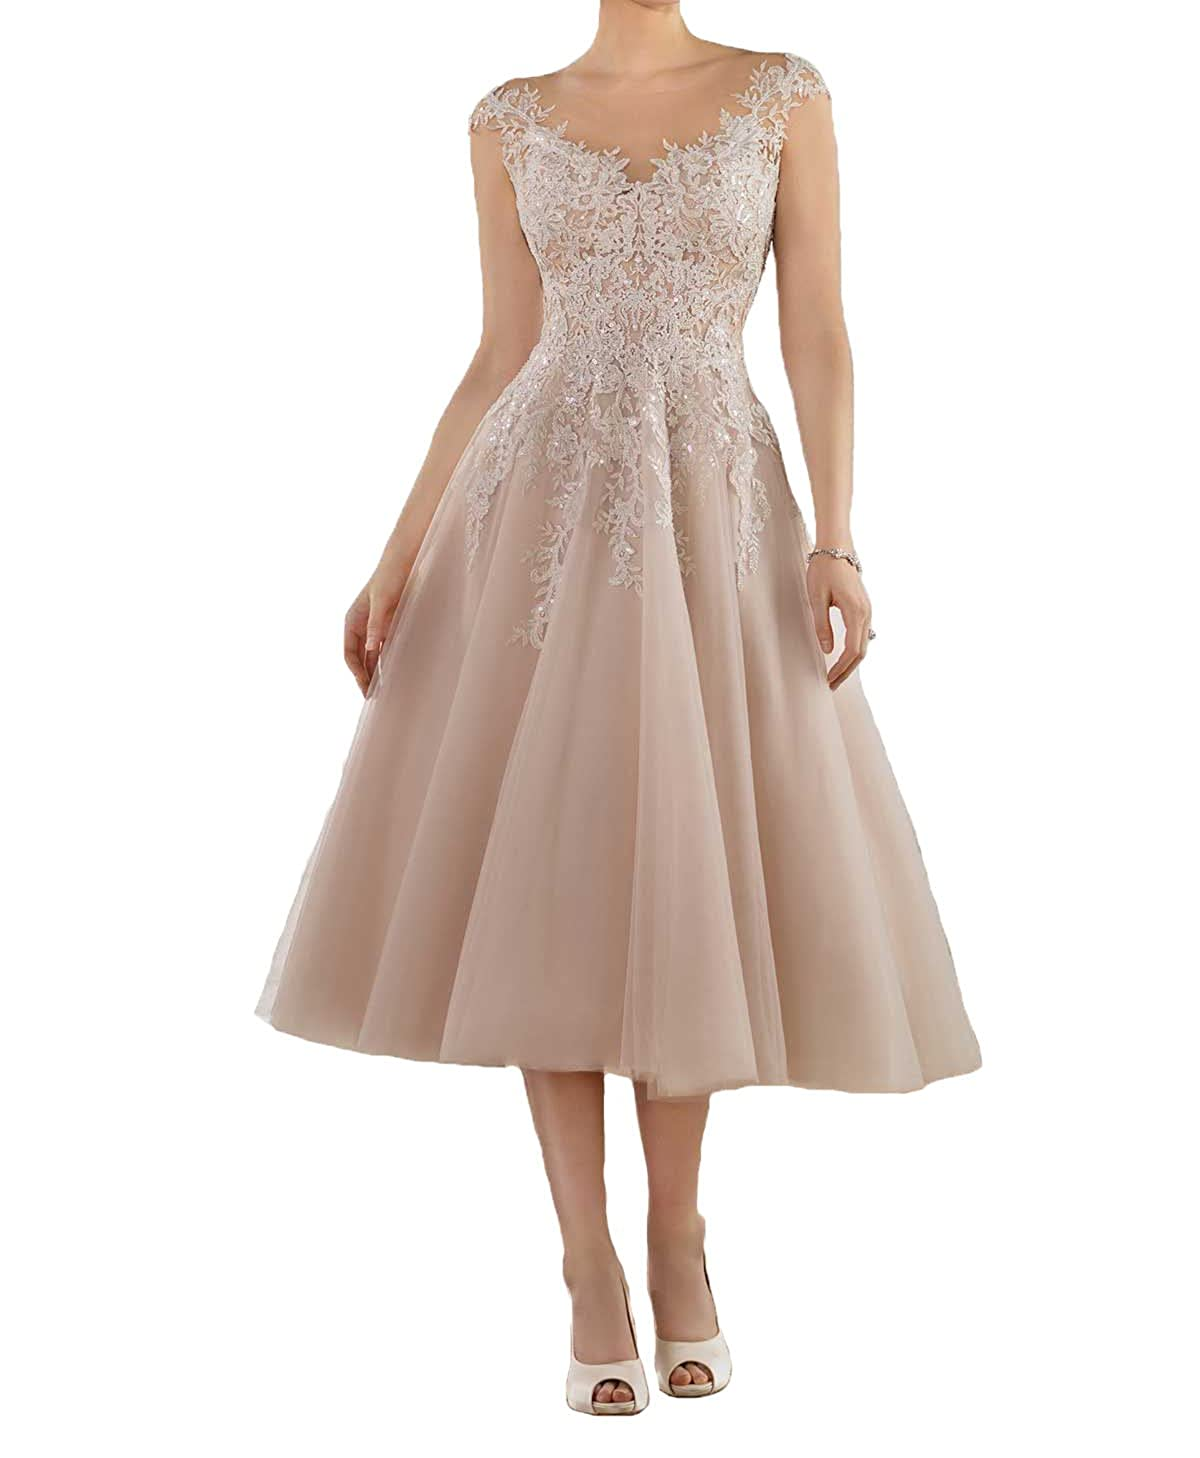 Graceprom Womens Ilusion Lace Appliques Tea Length Ball Gown